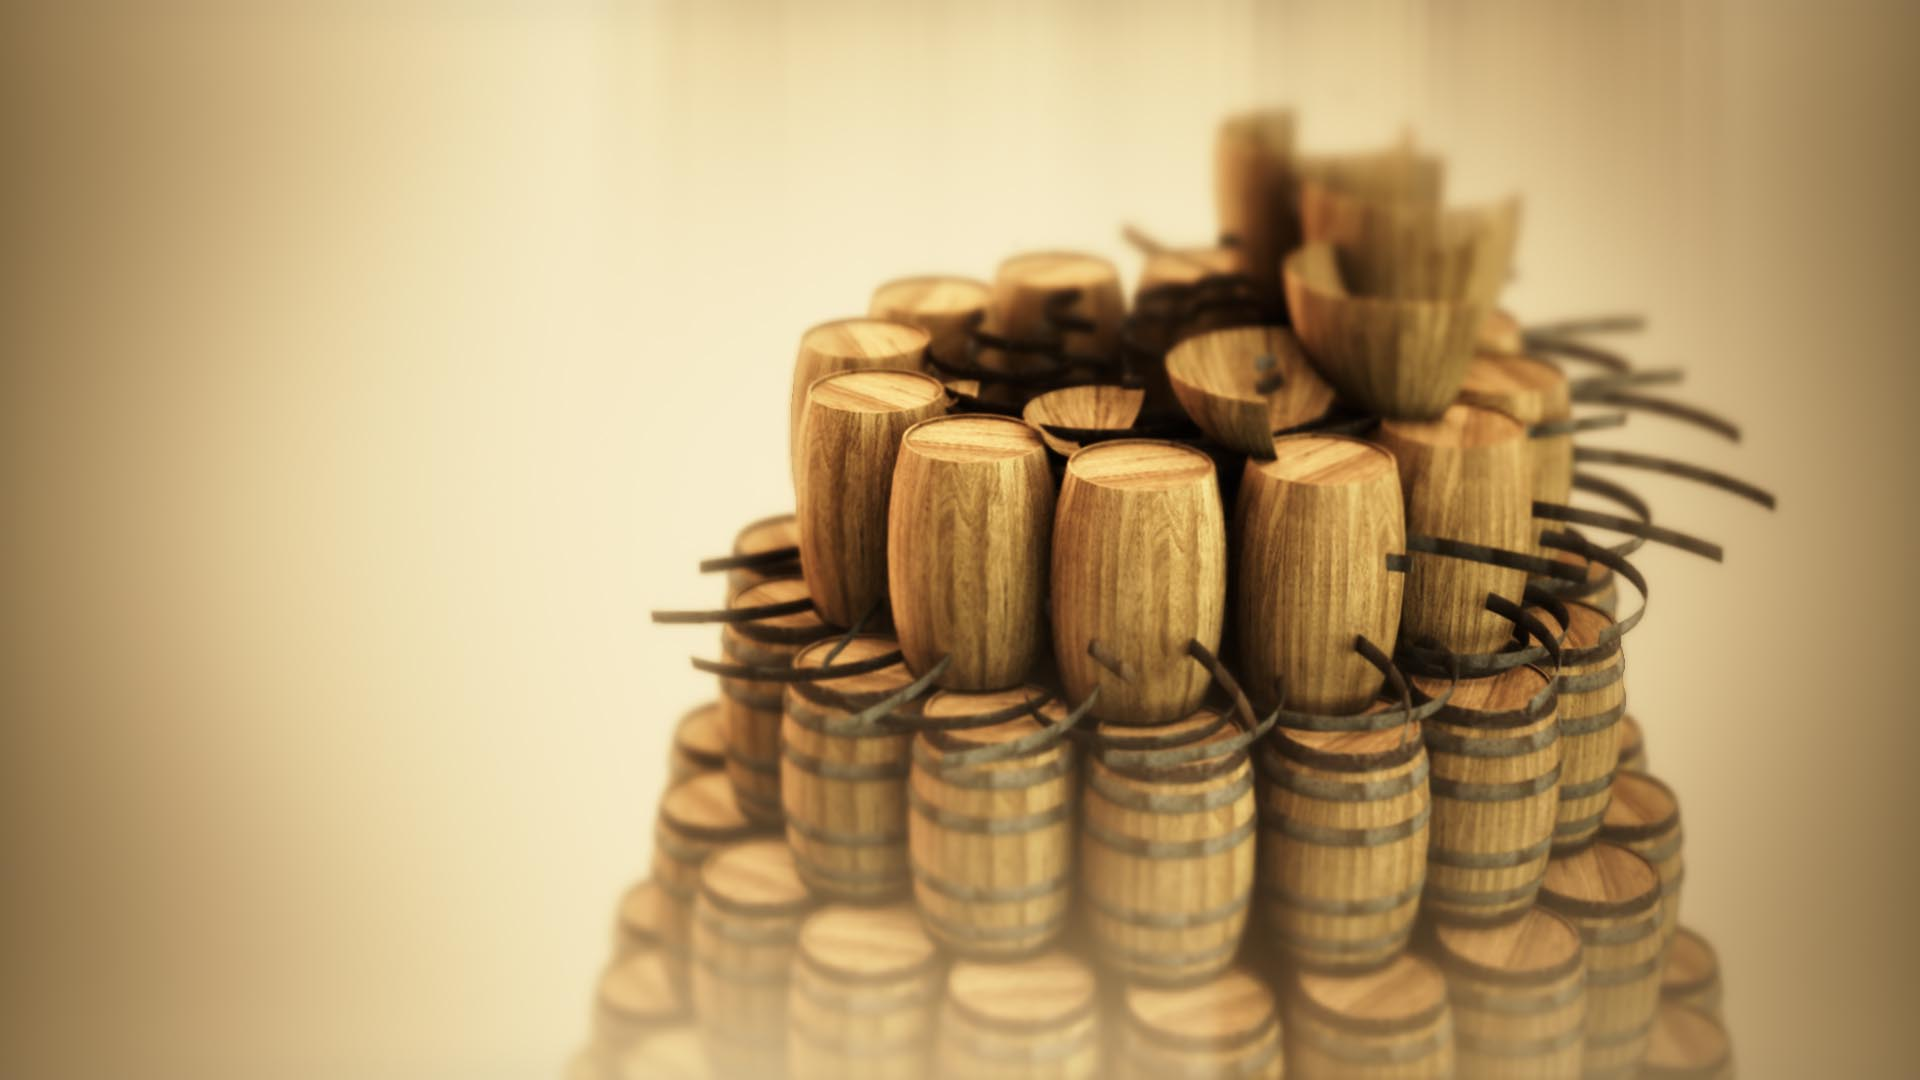 3D animation of a structure created from wooden barrels